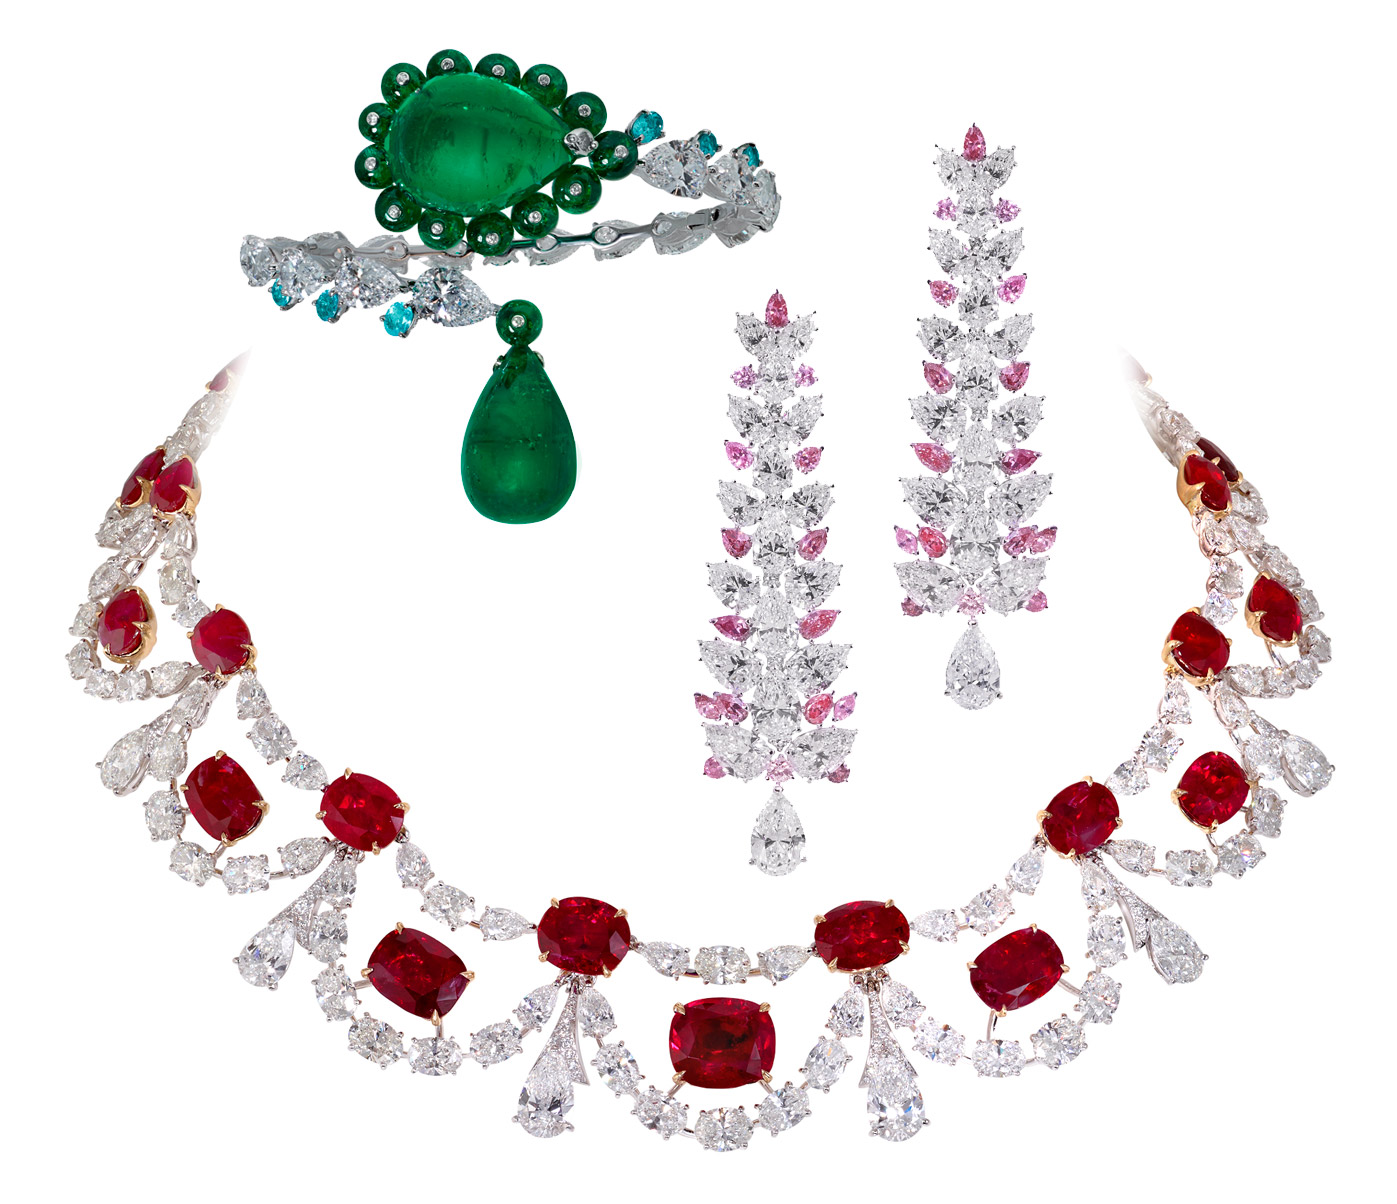 Moussaieff necklace in 77.06ct Burmese rubies and 60.77ct diamonds. Bangle in 71.34ct emeralds, diamonds and Paraiba tourmalines. Earrings in pink and colourless diamonds and platinum